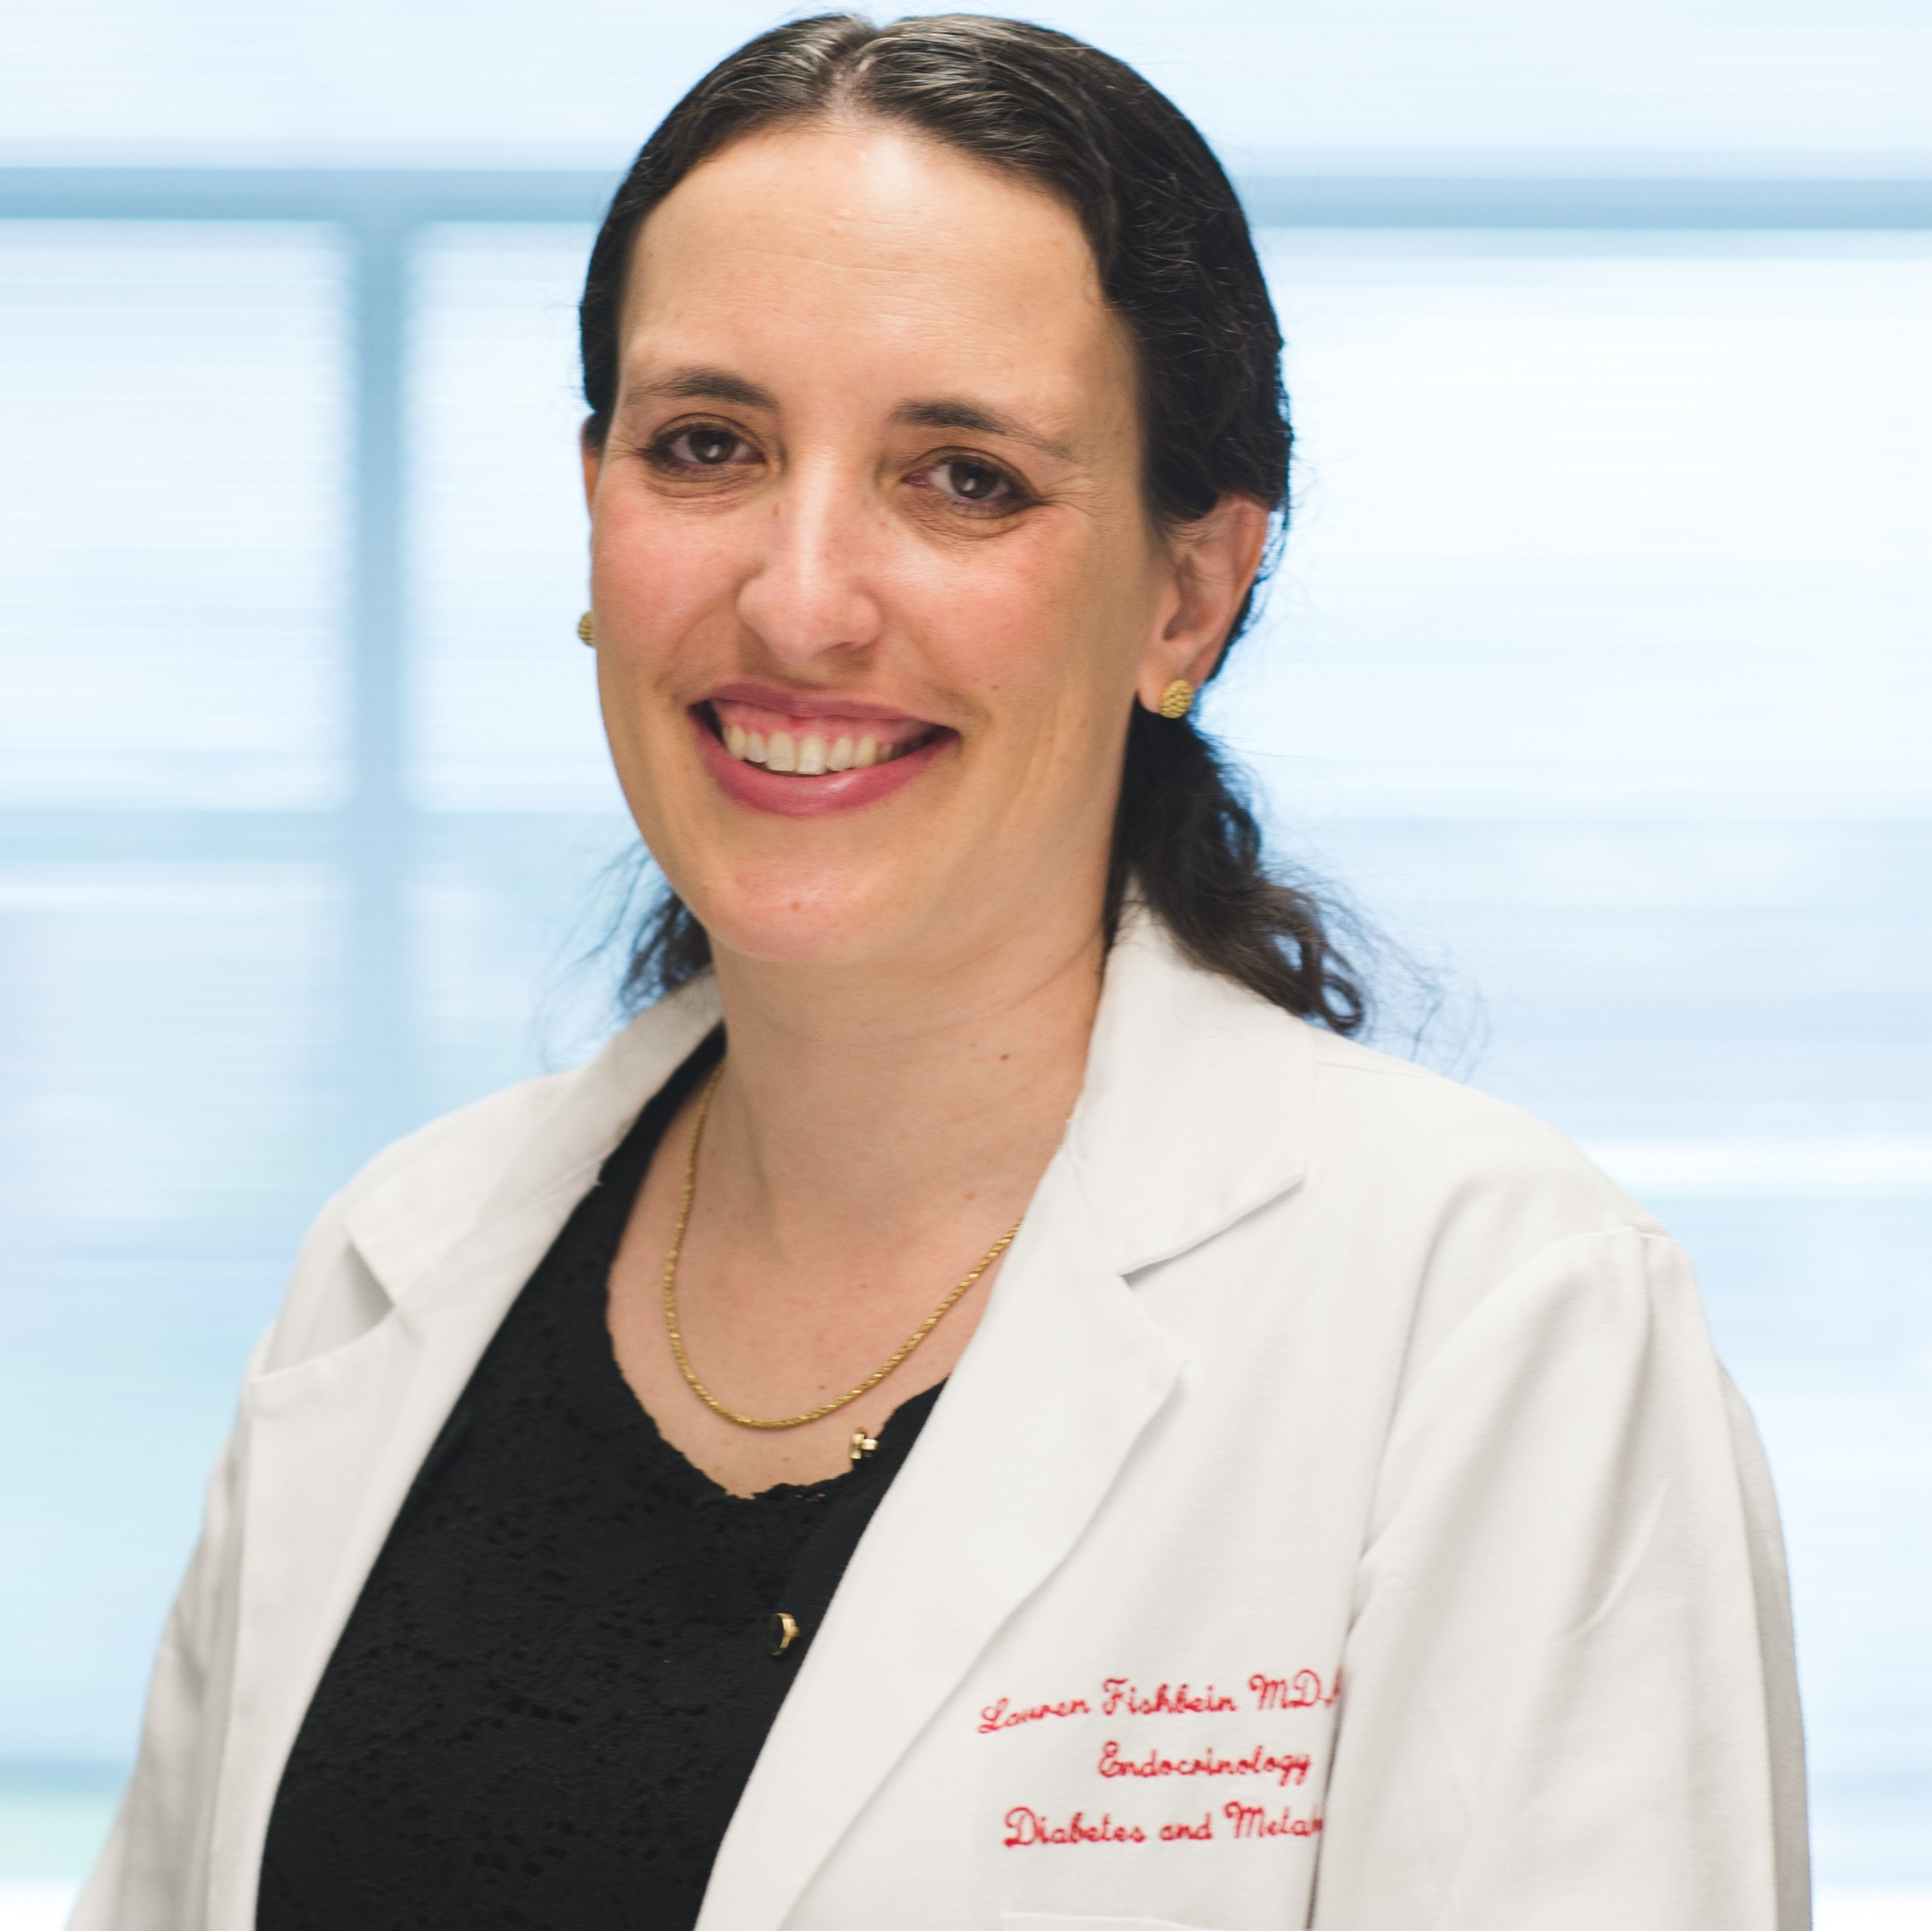 Lauren Fishbein, MD, PhD, MTR